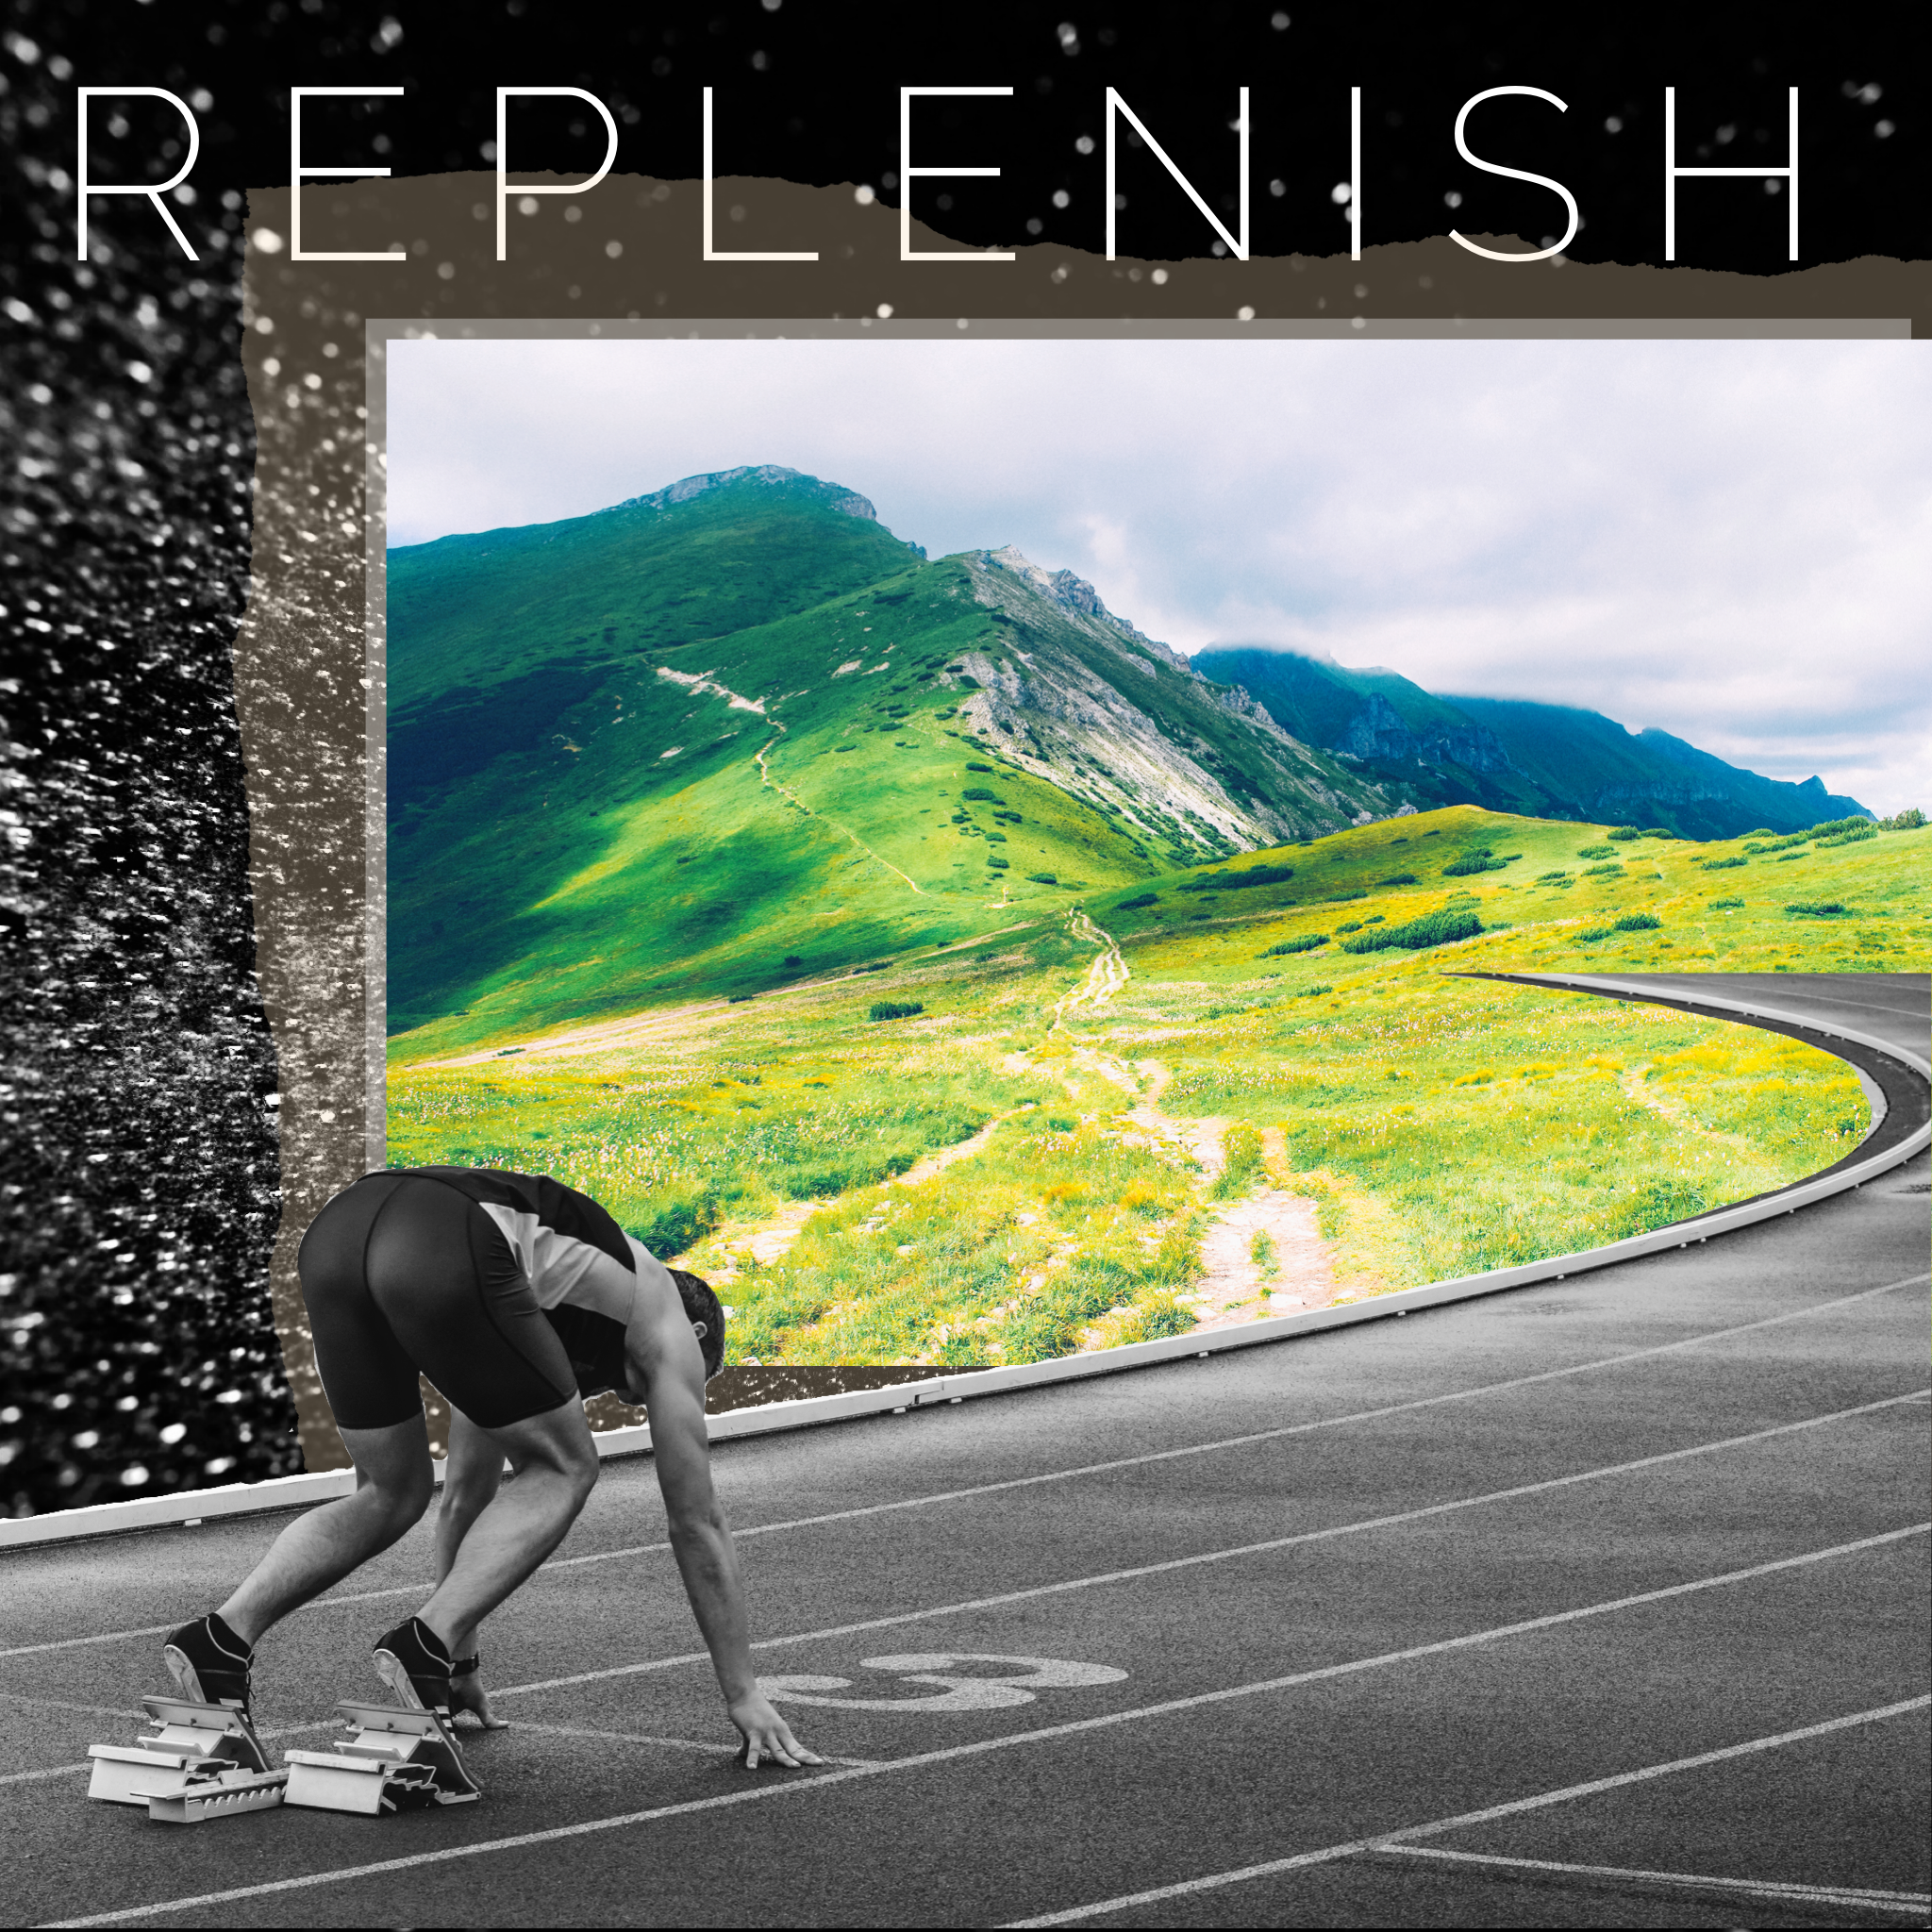 Use Replenish to refresh, regain, rejuvenate.